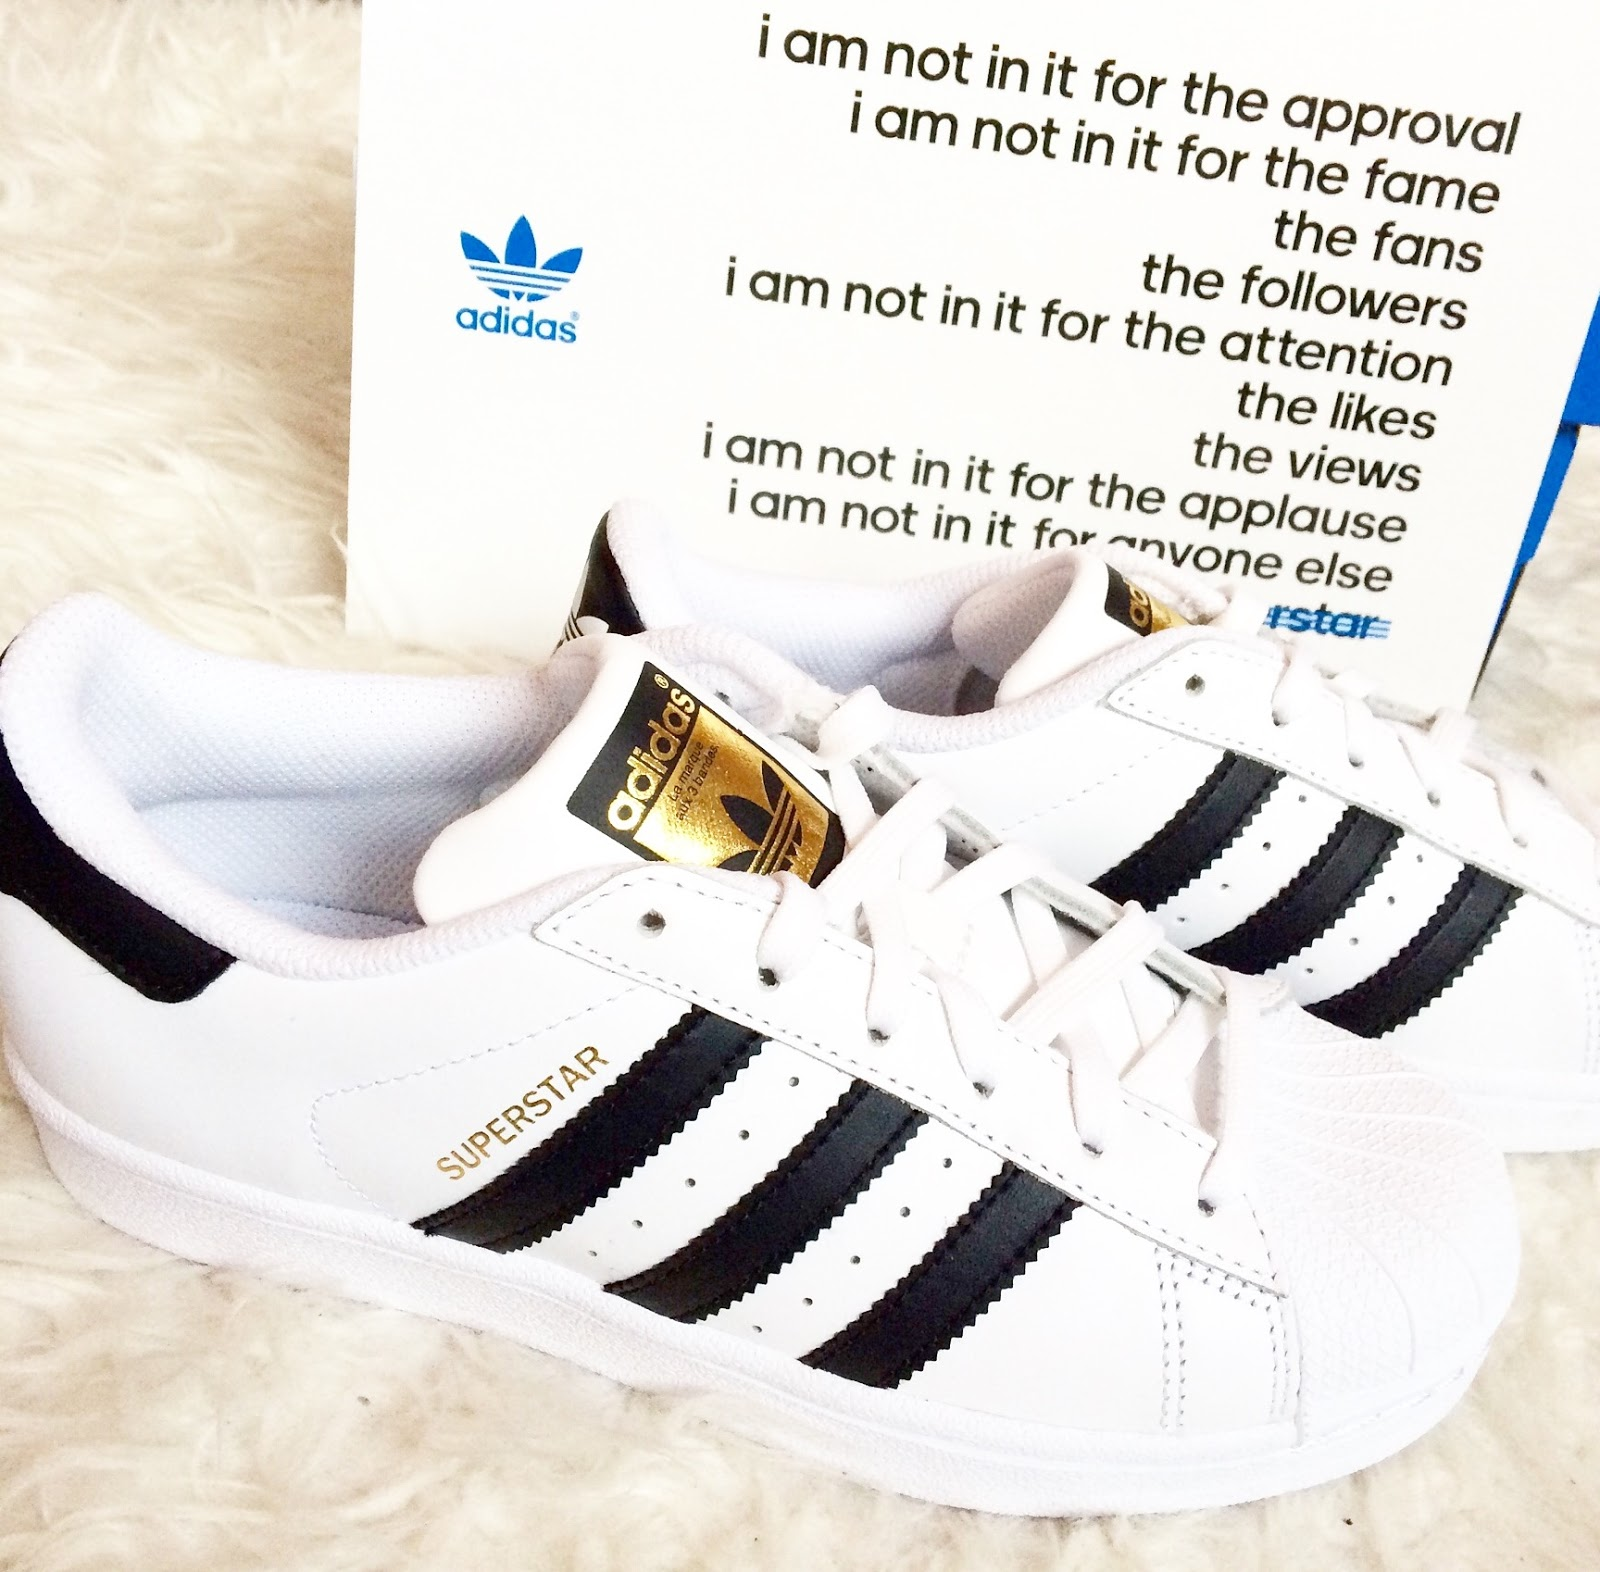 Details about Adidas Originals Men's Superstar La Marque Aux 3 Bandes Shoes Vintage sz 12